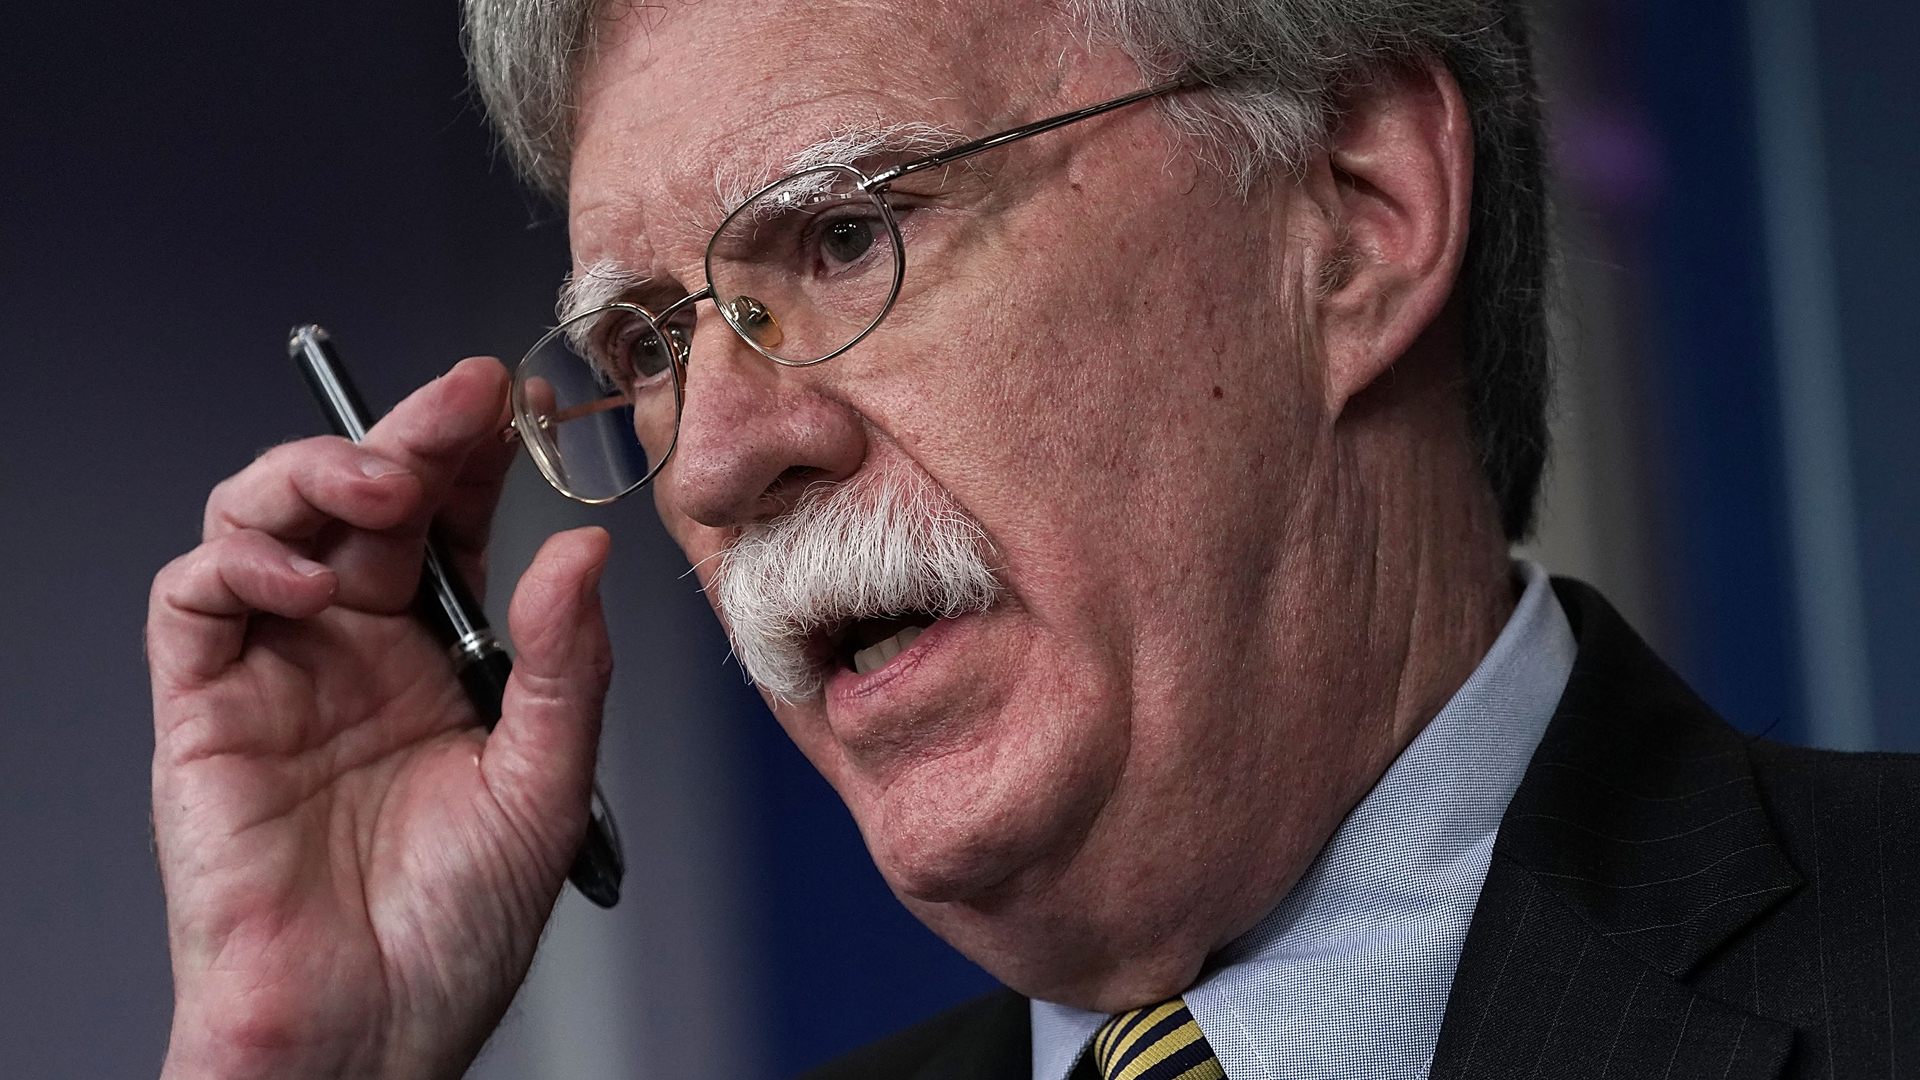 National Security Adviser John Bolton speaks during a White House news briefing at the White House on Oct. 3, 2018, in Washington, D.C. (Credit: Alex Wong/Getty Images)